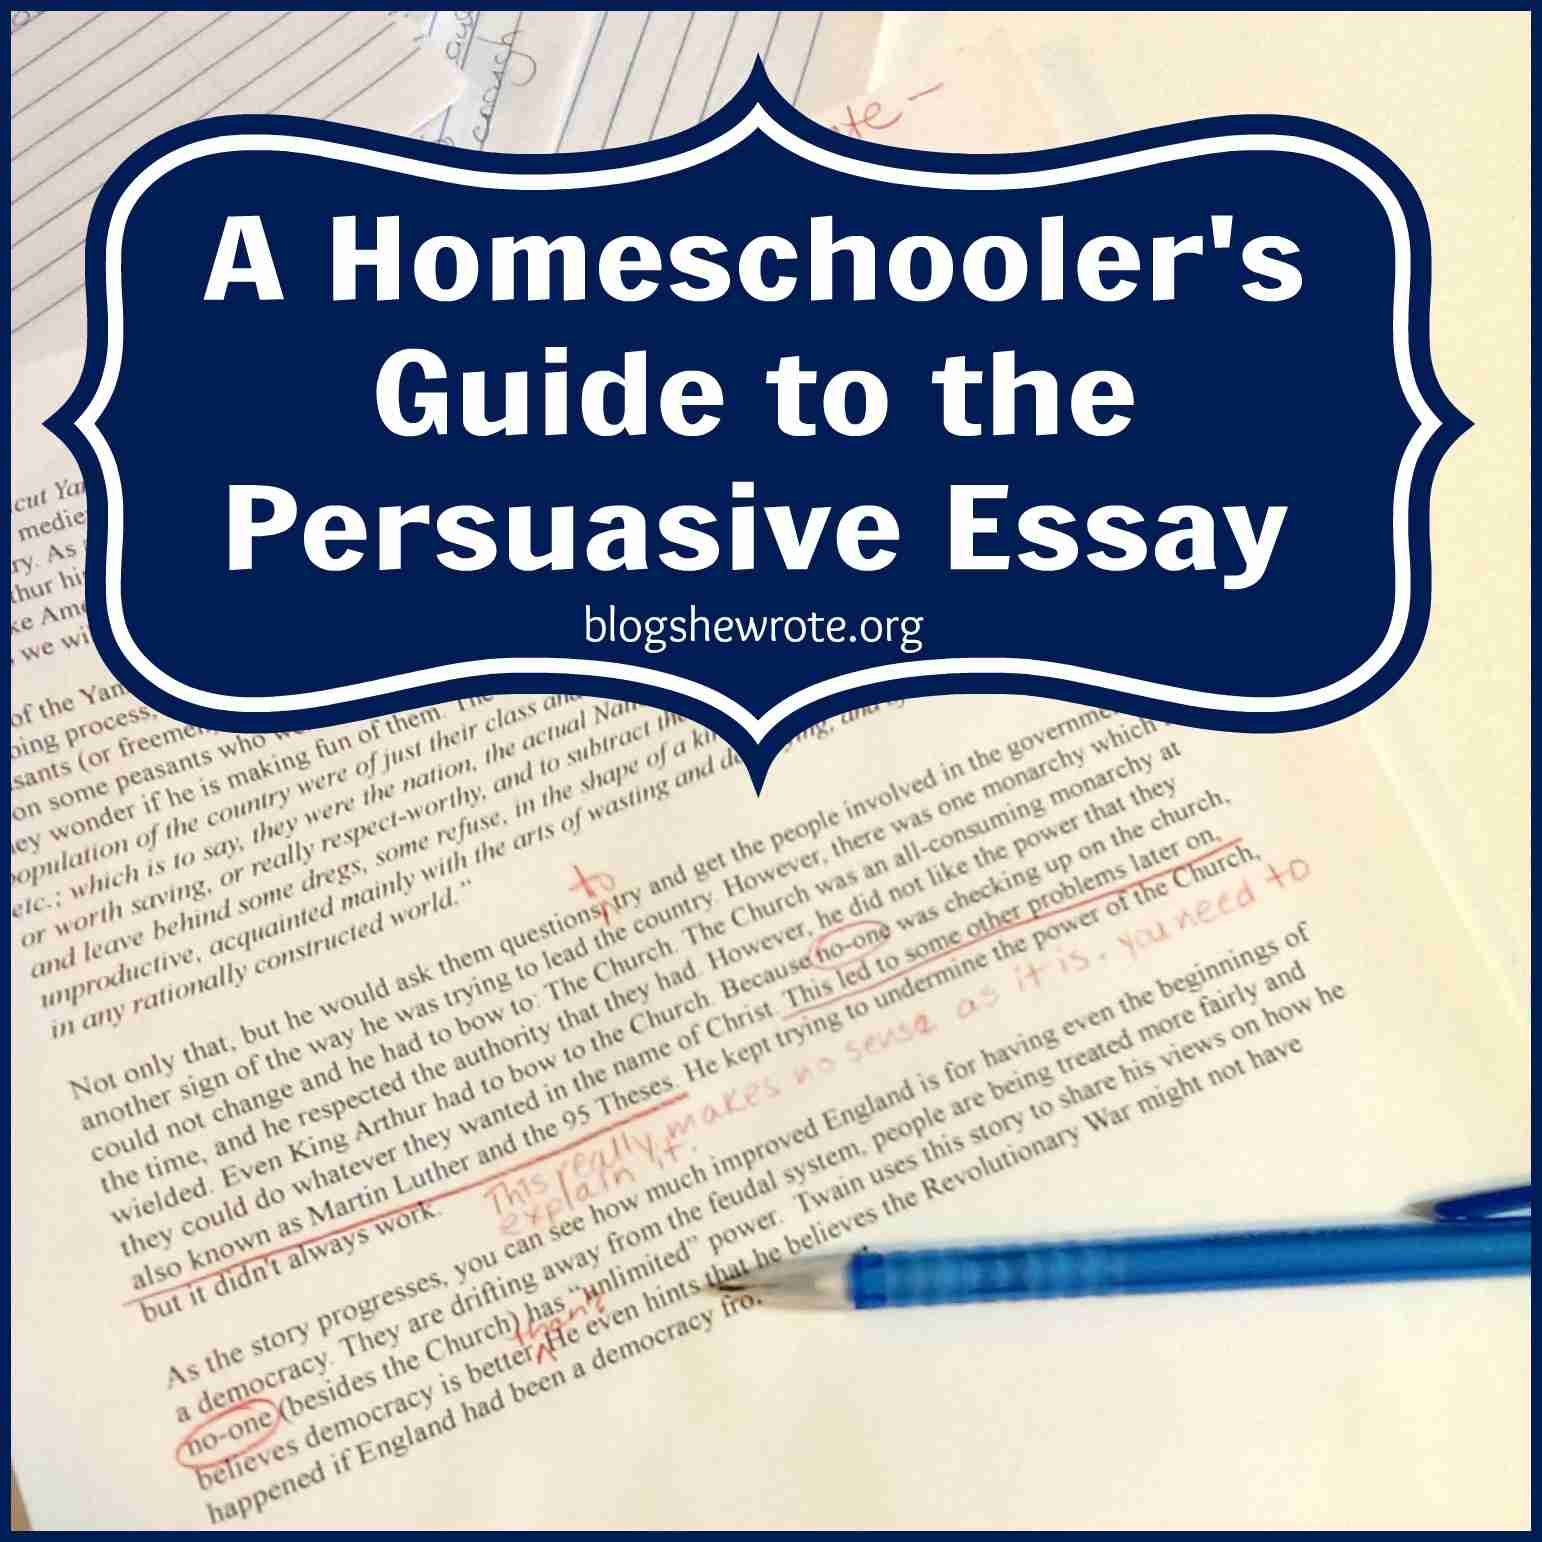 A Homeschoolers Guide To The Persuasive Essay  Blog She Wrote A Homeschoolers Guide To The Persuasive Essay